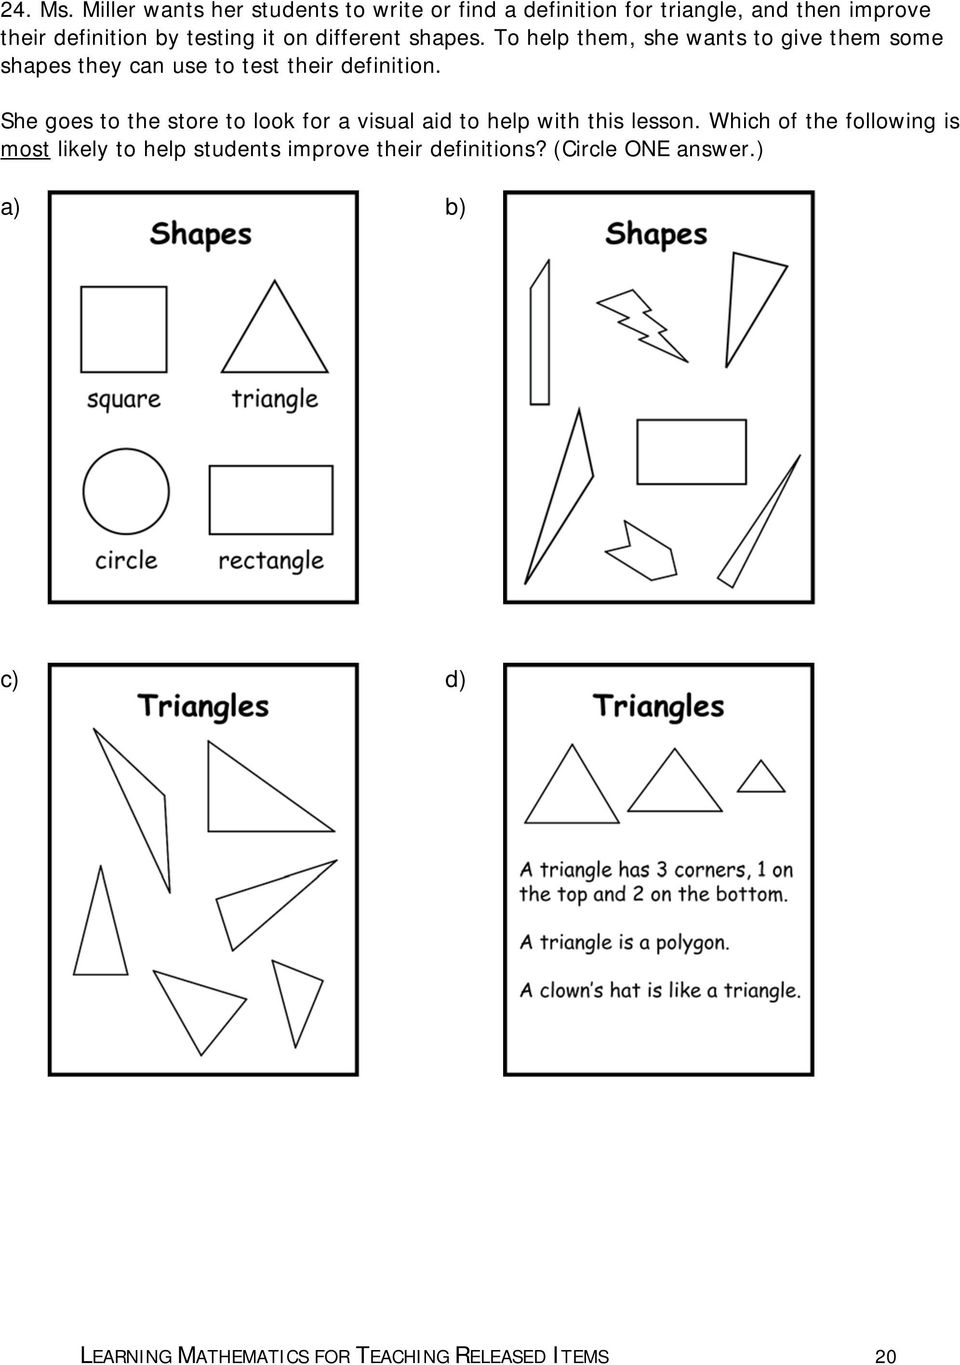 on different shapes. To help them, she wants to give them some shapes they can use to test their definition.